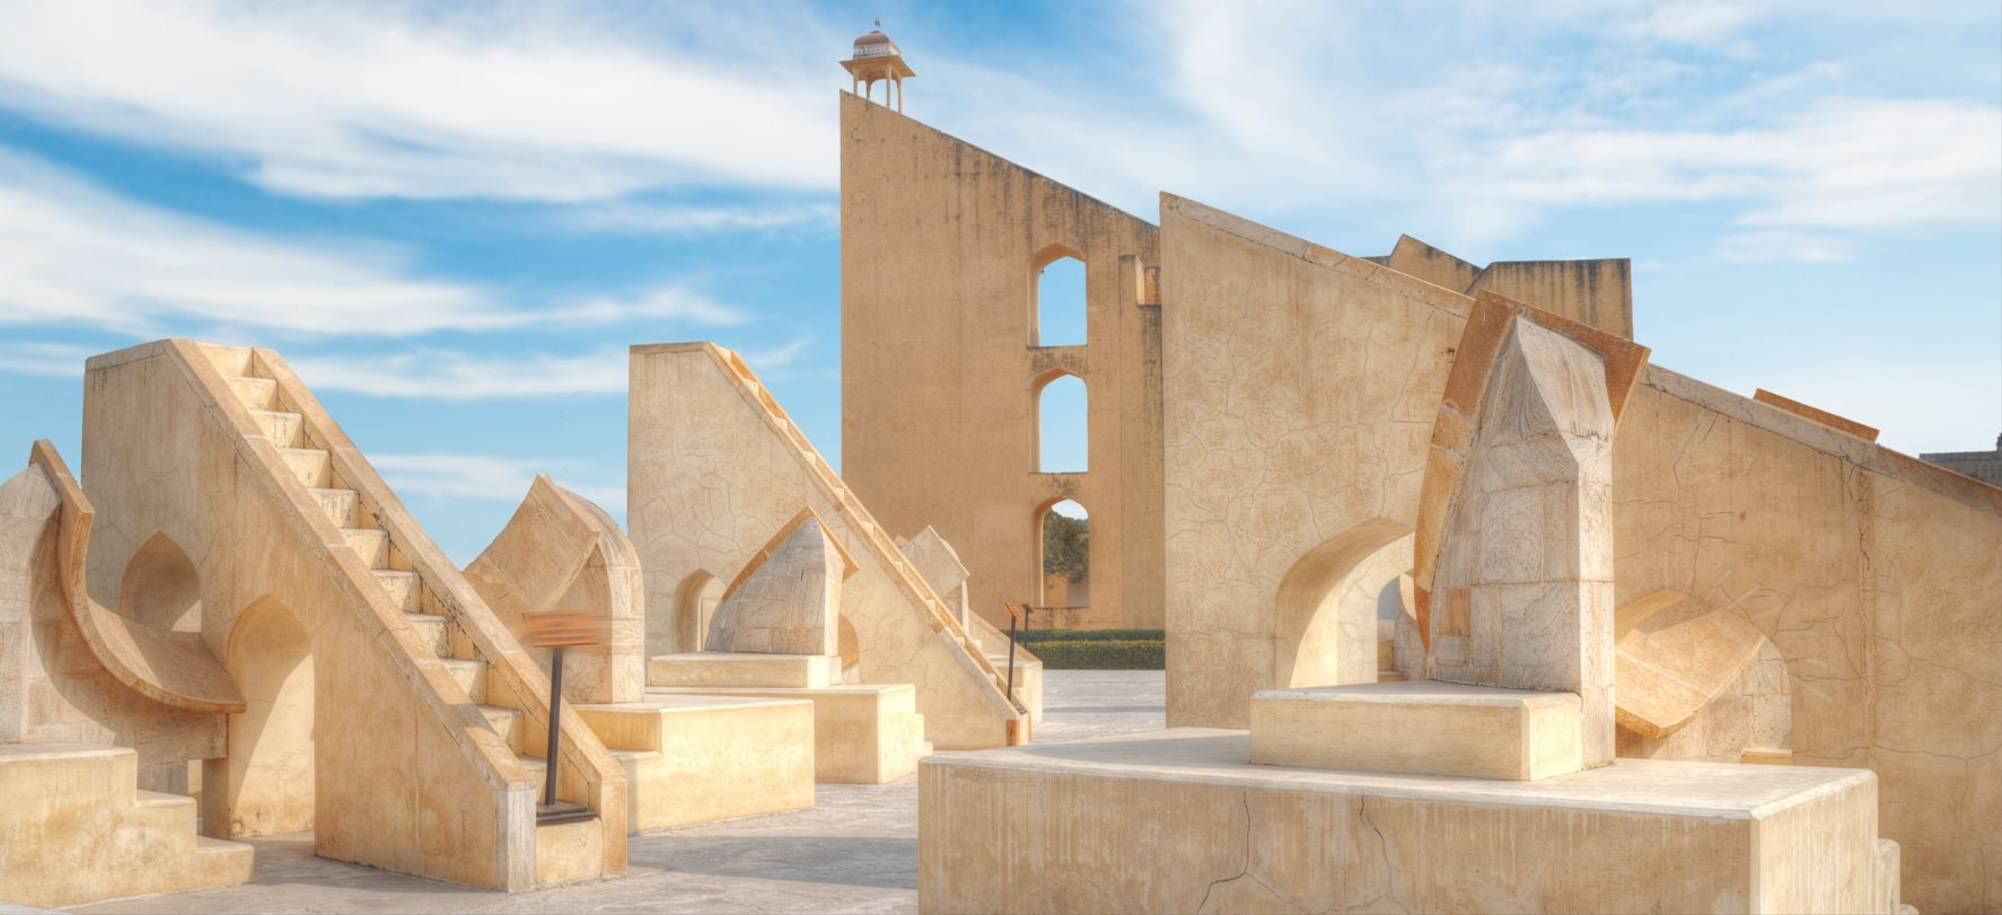 5 Day   Tour Day 5   Jaipur, Jantar Mantar Observatory   Itinerary Desktop